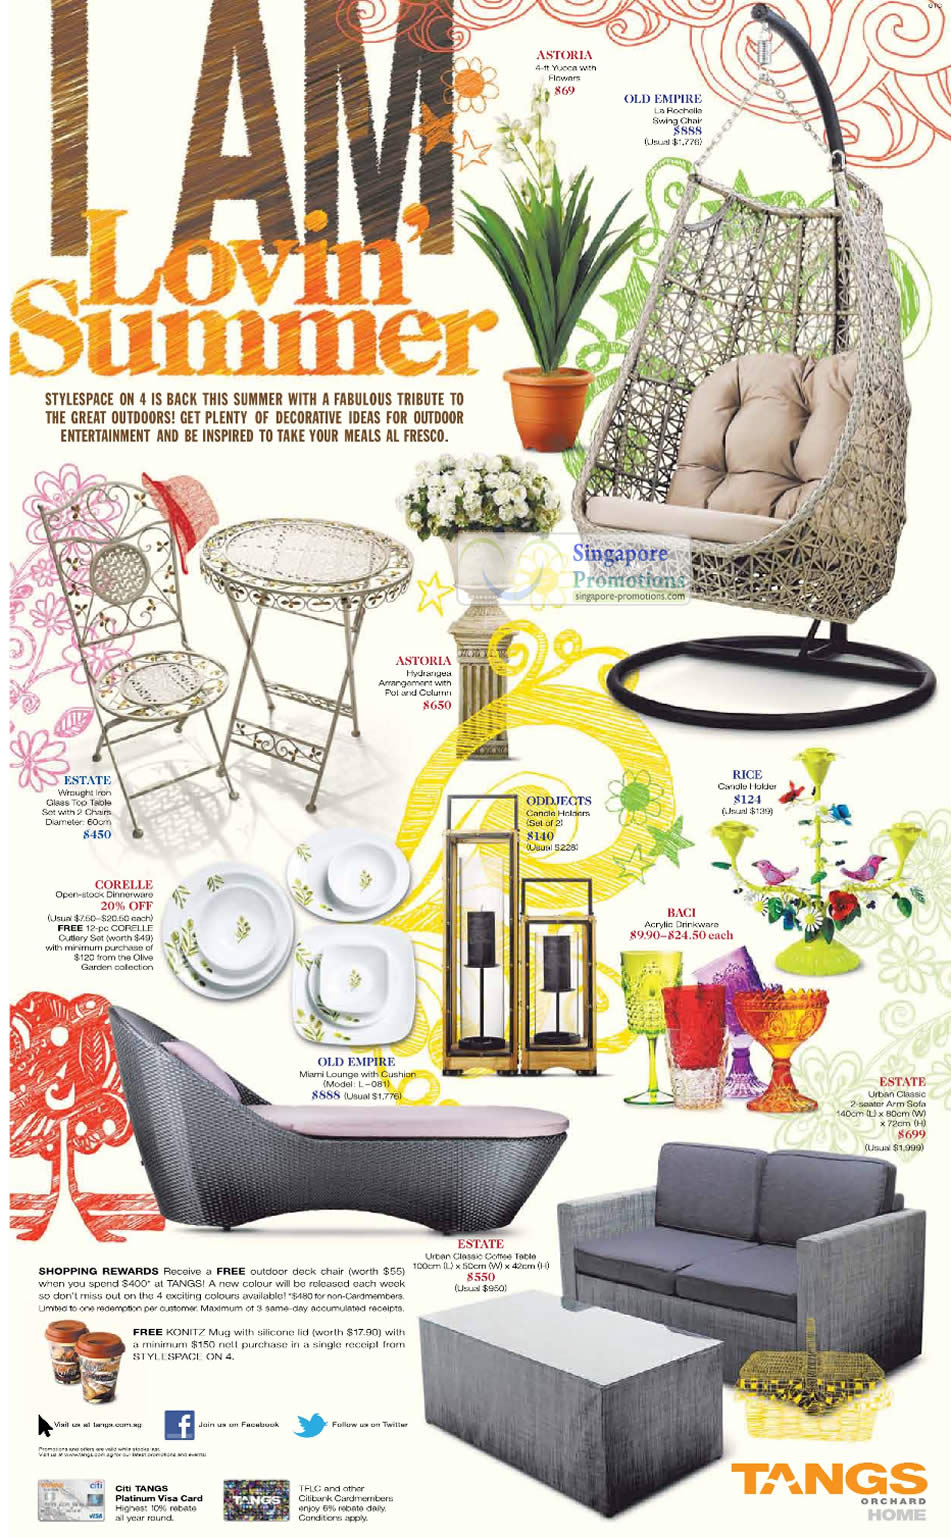 Furniture, Household, Astoria Yucca, Old Empire, La Rochelle Swing Chair, Estate Wrought Table, Hydrangea Pot Column, Rice Candle Holder, Corelle, Oddjects Candle Holders, Urban Classic, Coffee Table